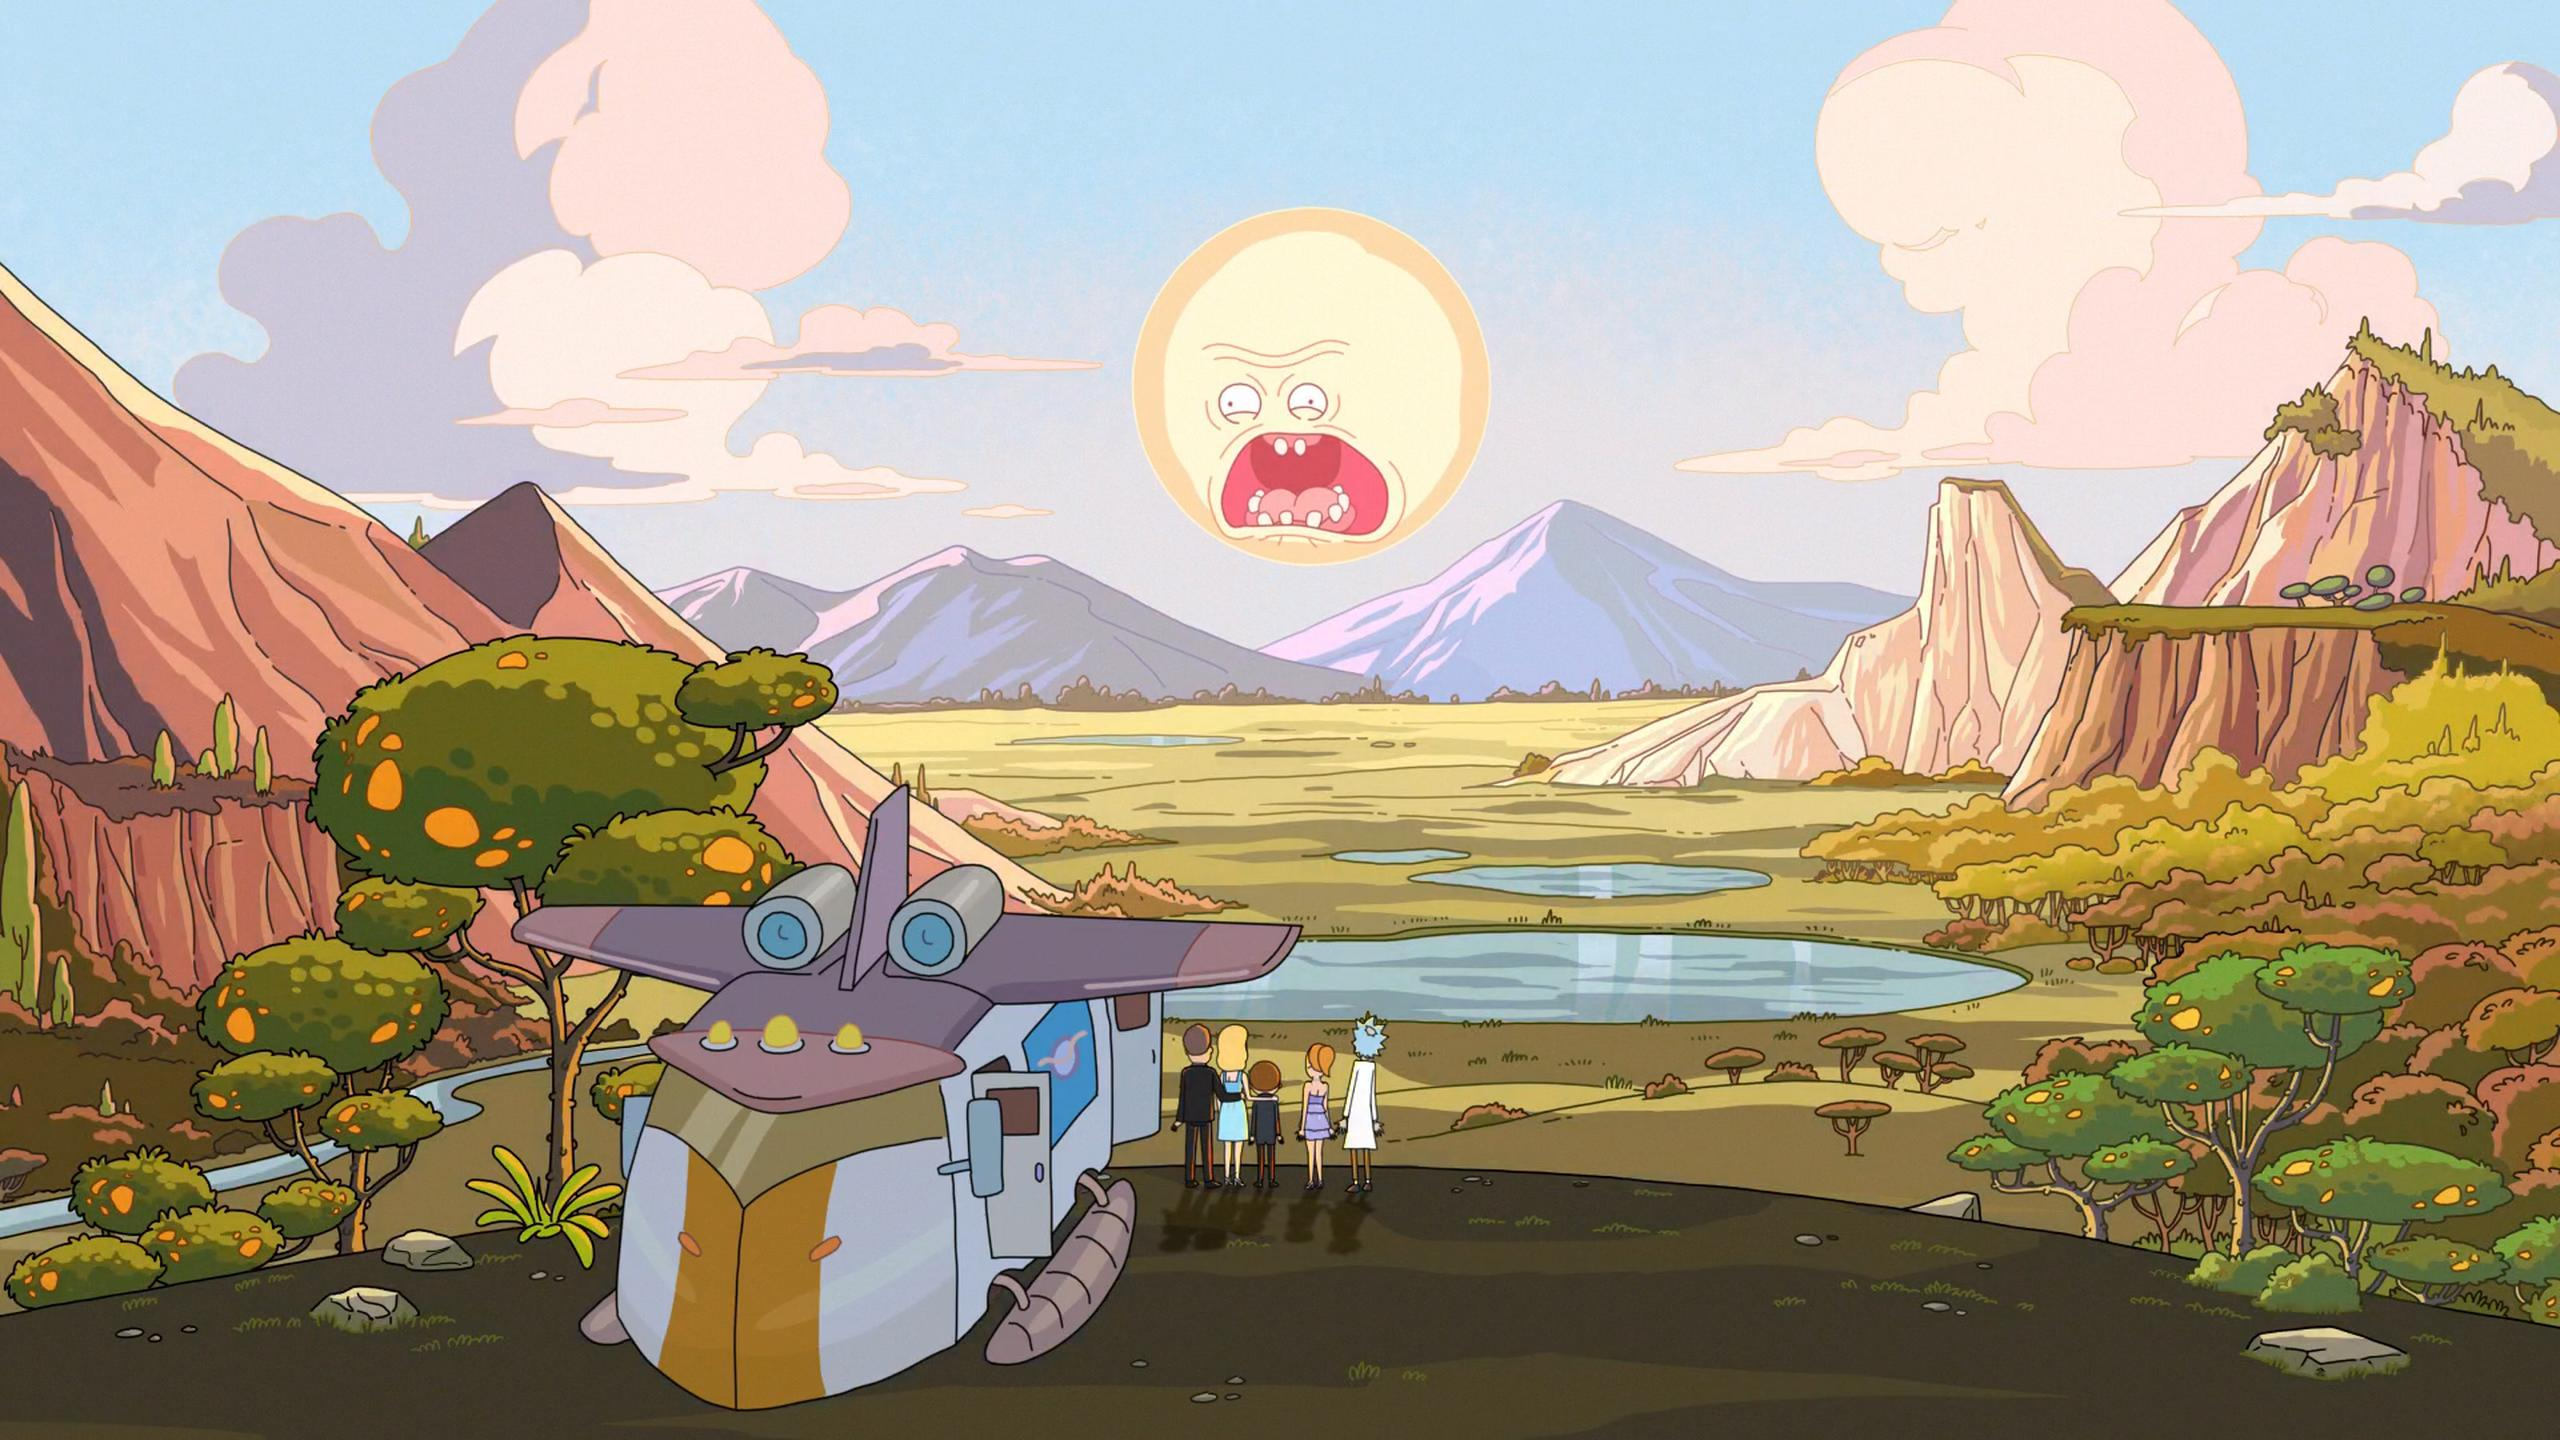 HD Rick and Morty Wallpapers Full HD Pictures 2560x1440